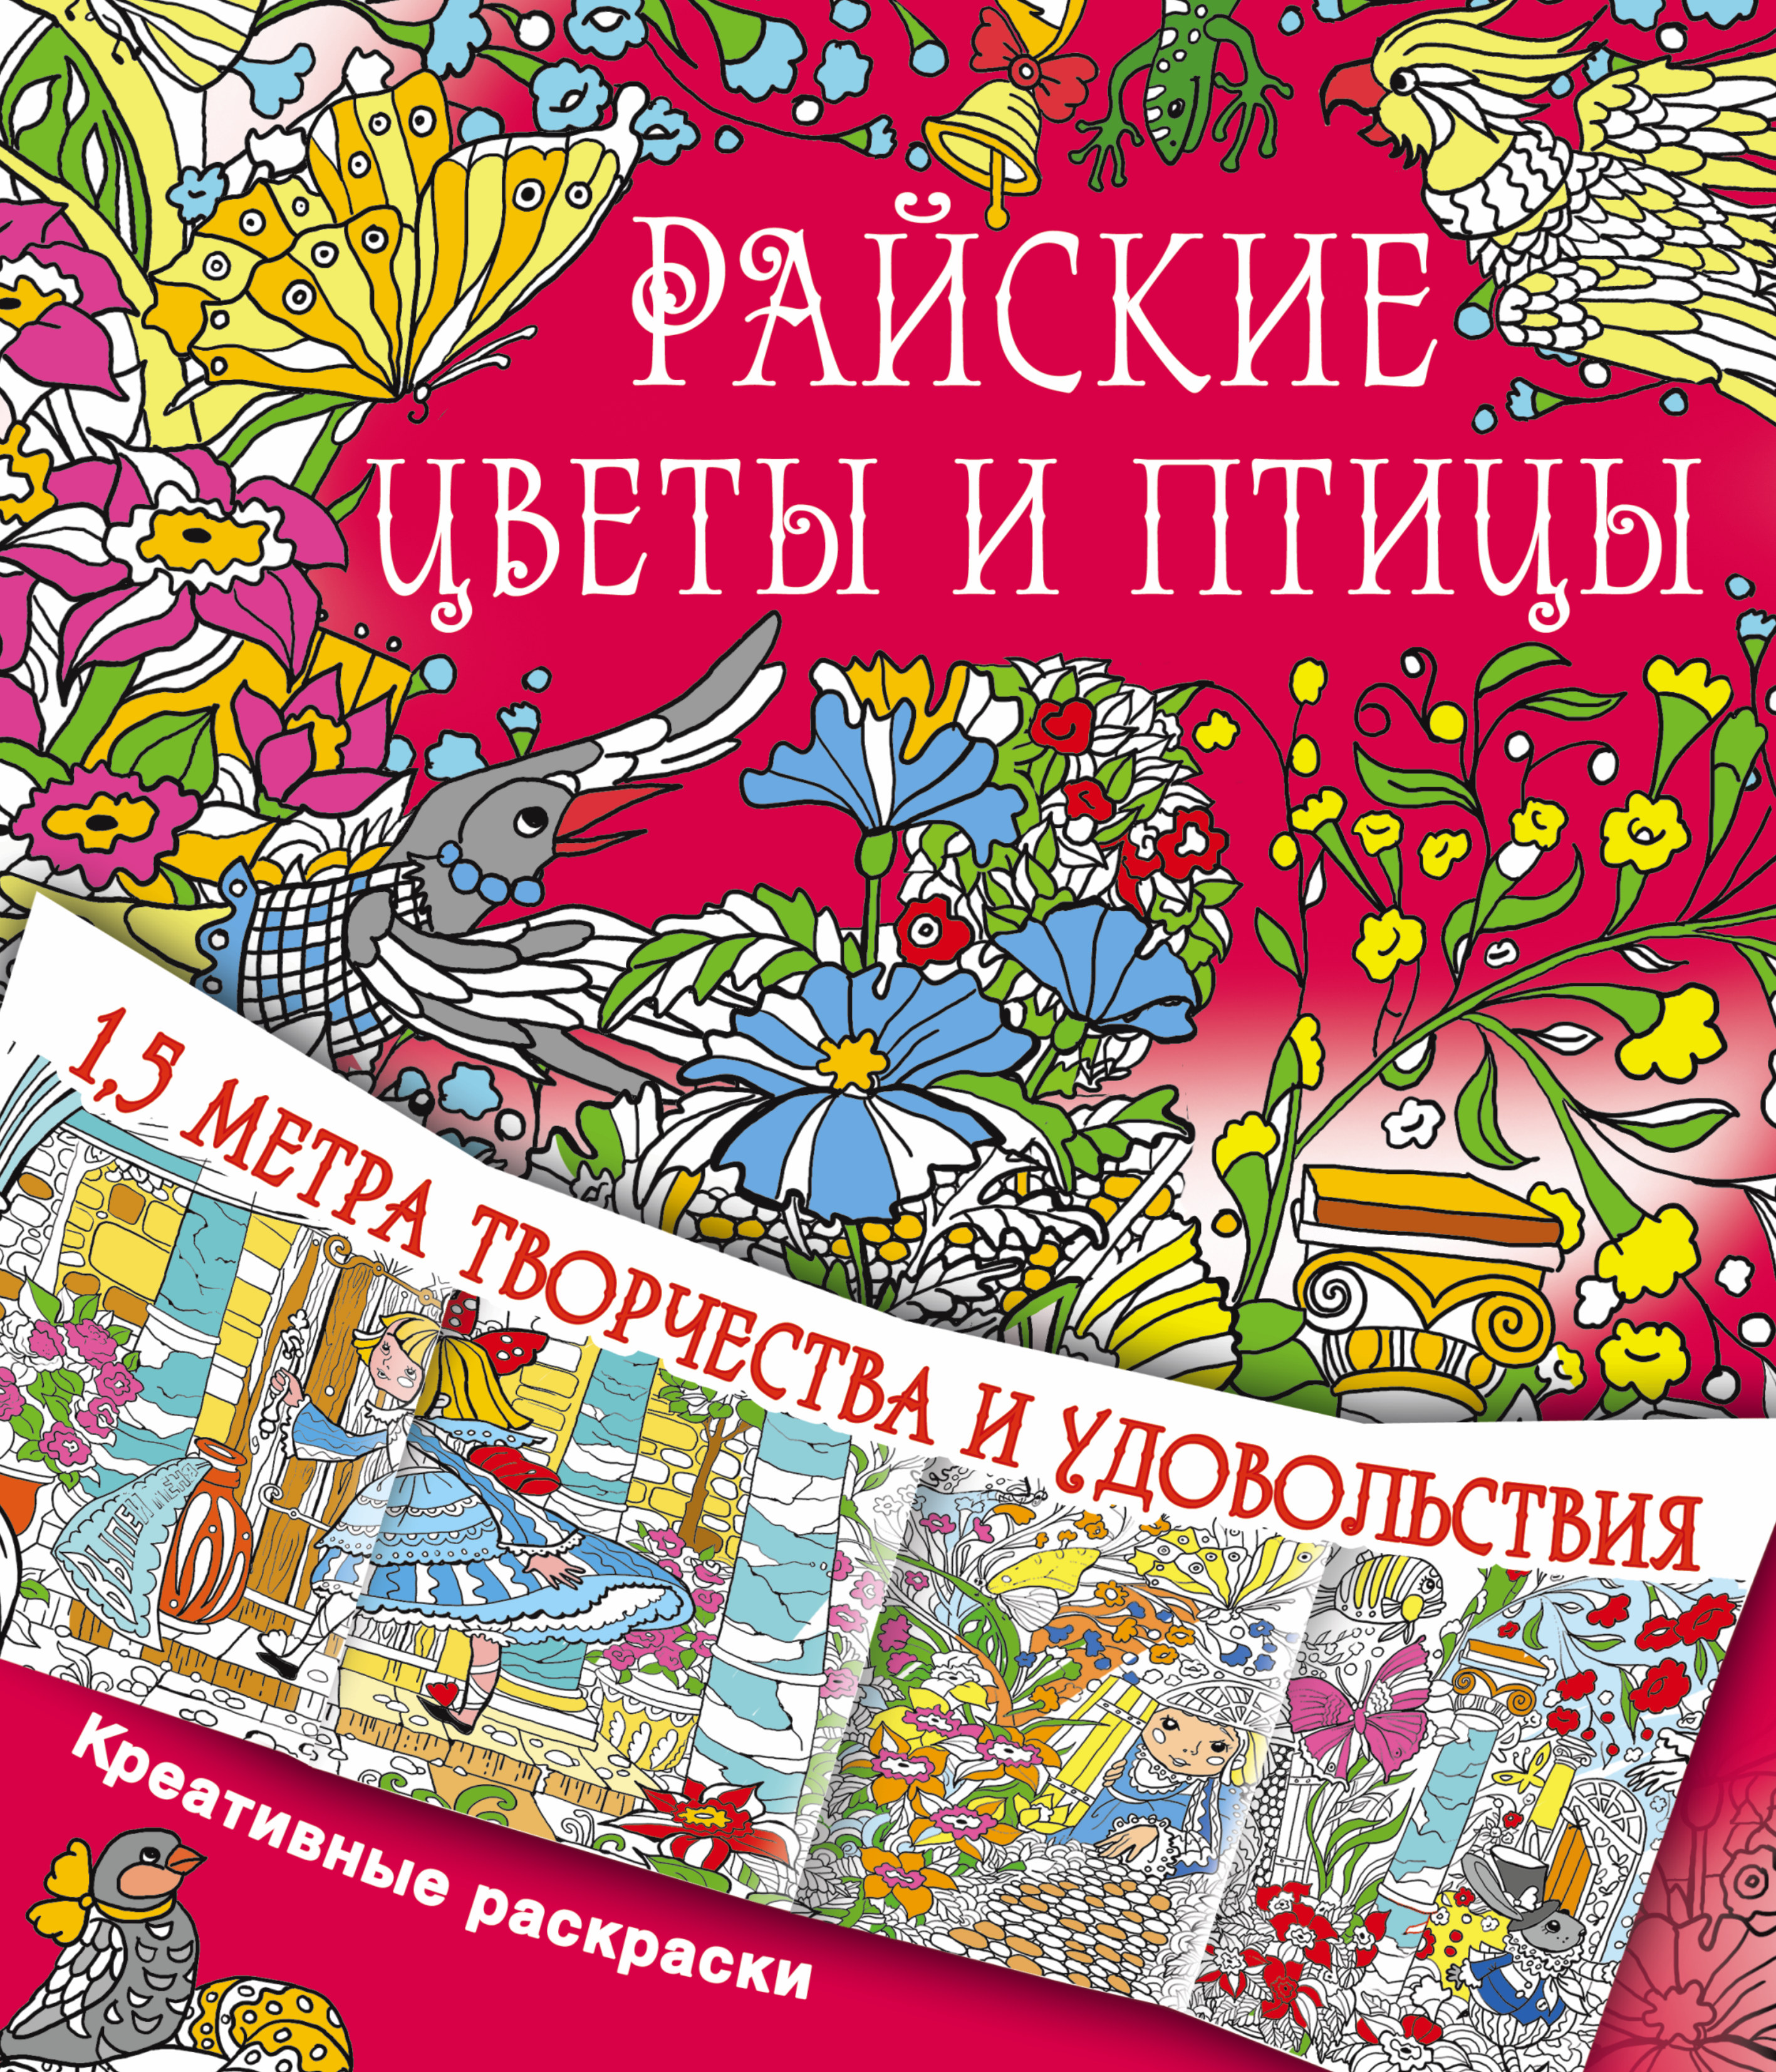 Райские цветы и птицы